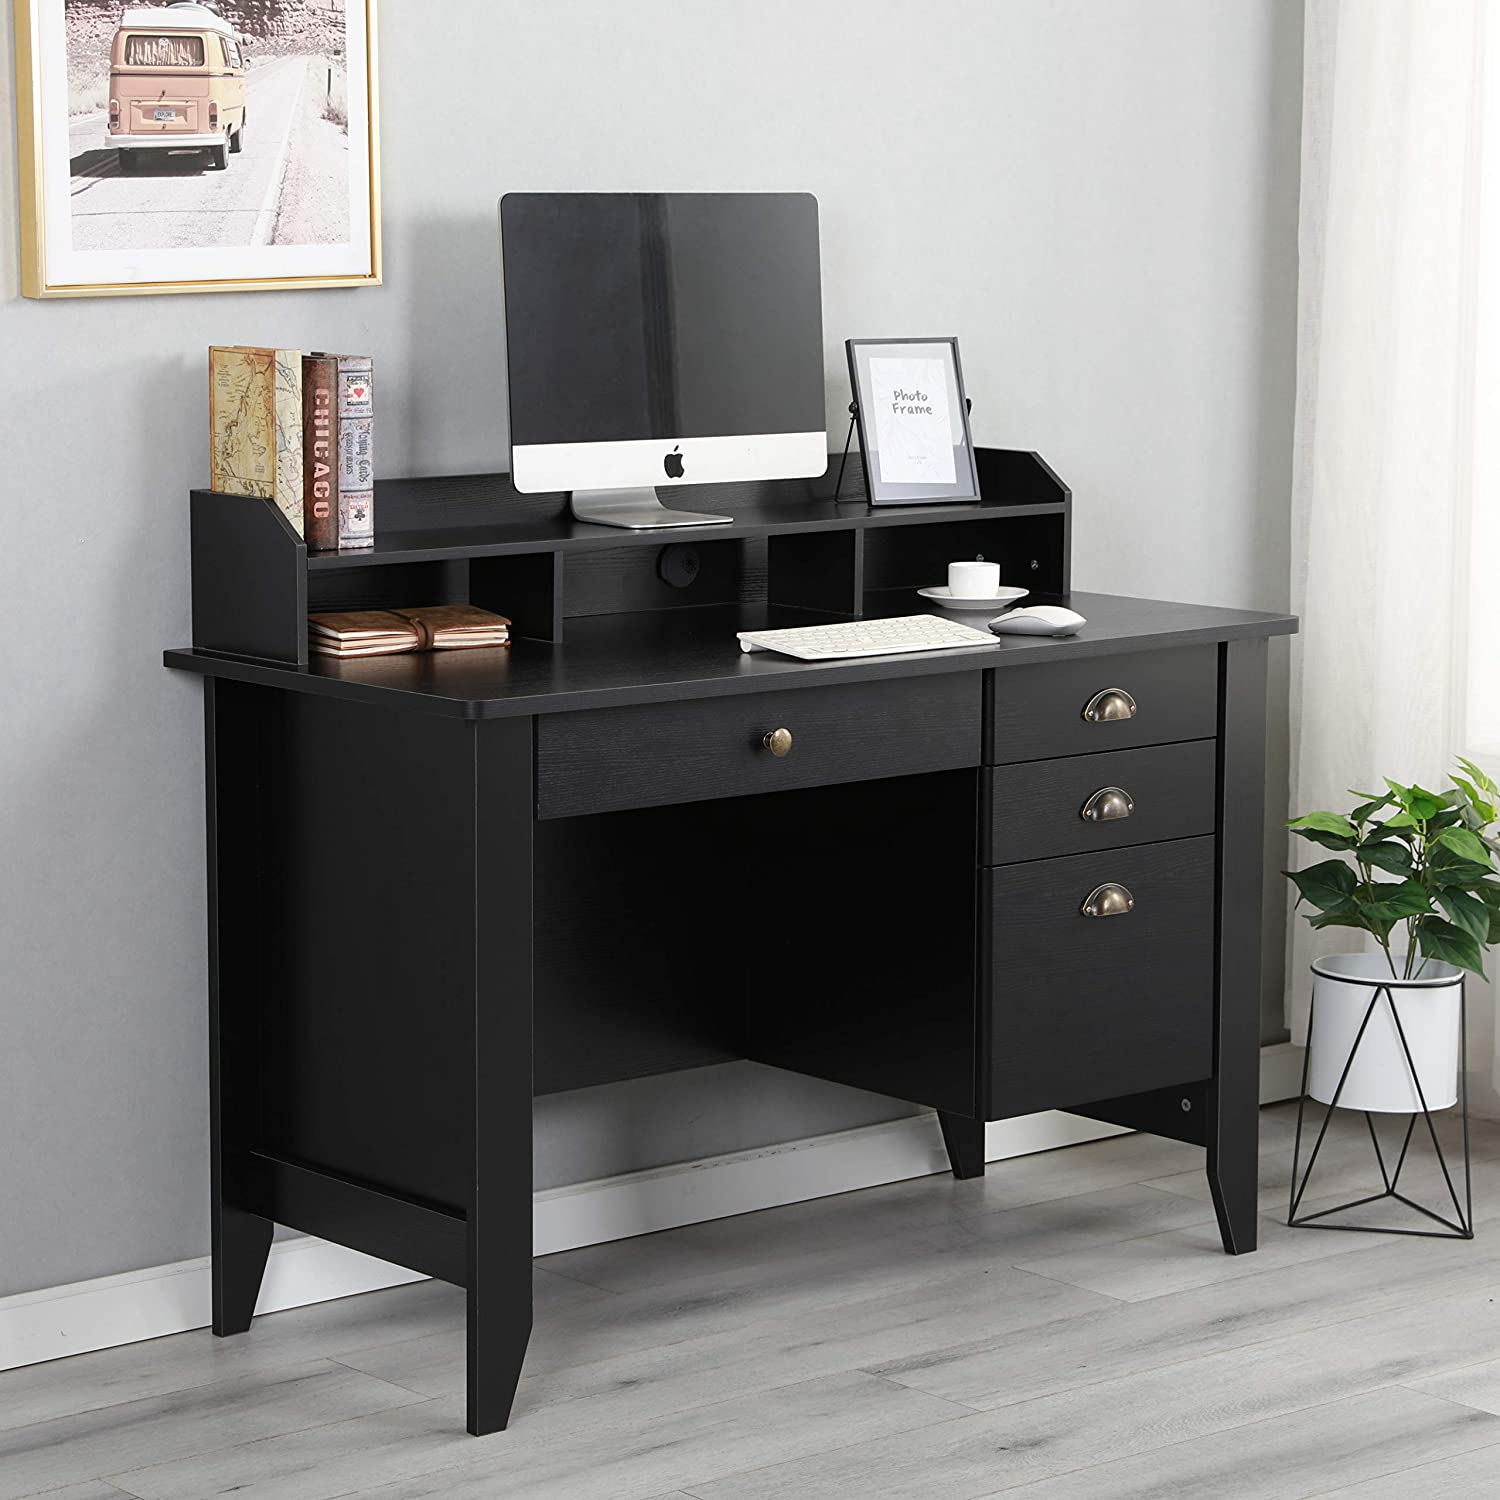 Amazon com executive desk 47 office desk pc laptop home office study writing table with four drawers wood grain black kitchen dining